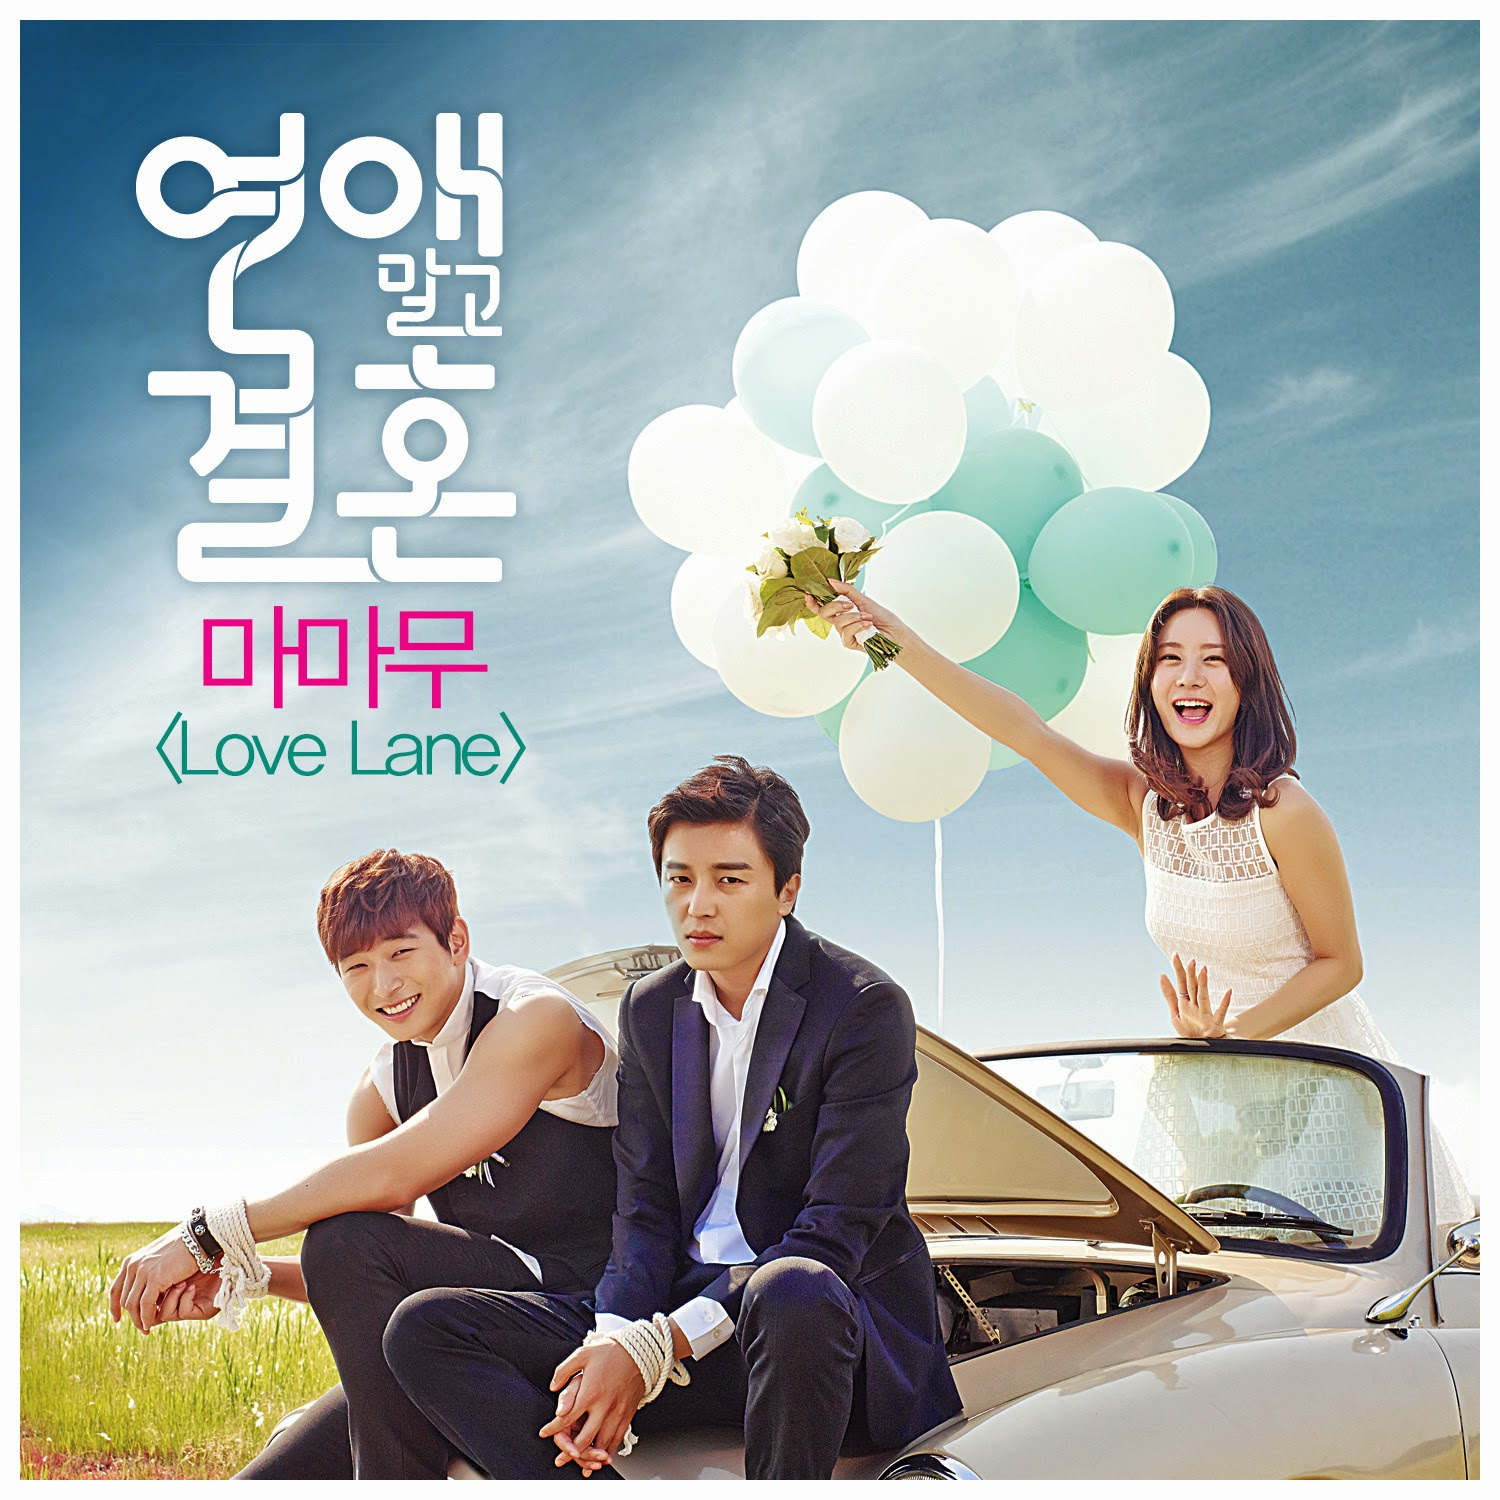 Lirik lagu hope and hope ost marriage not dating